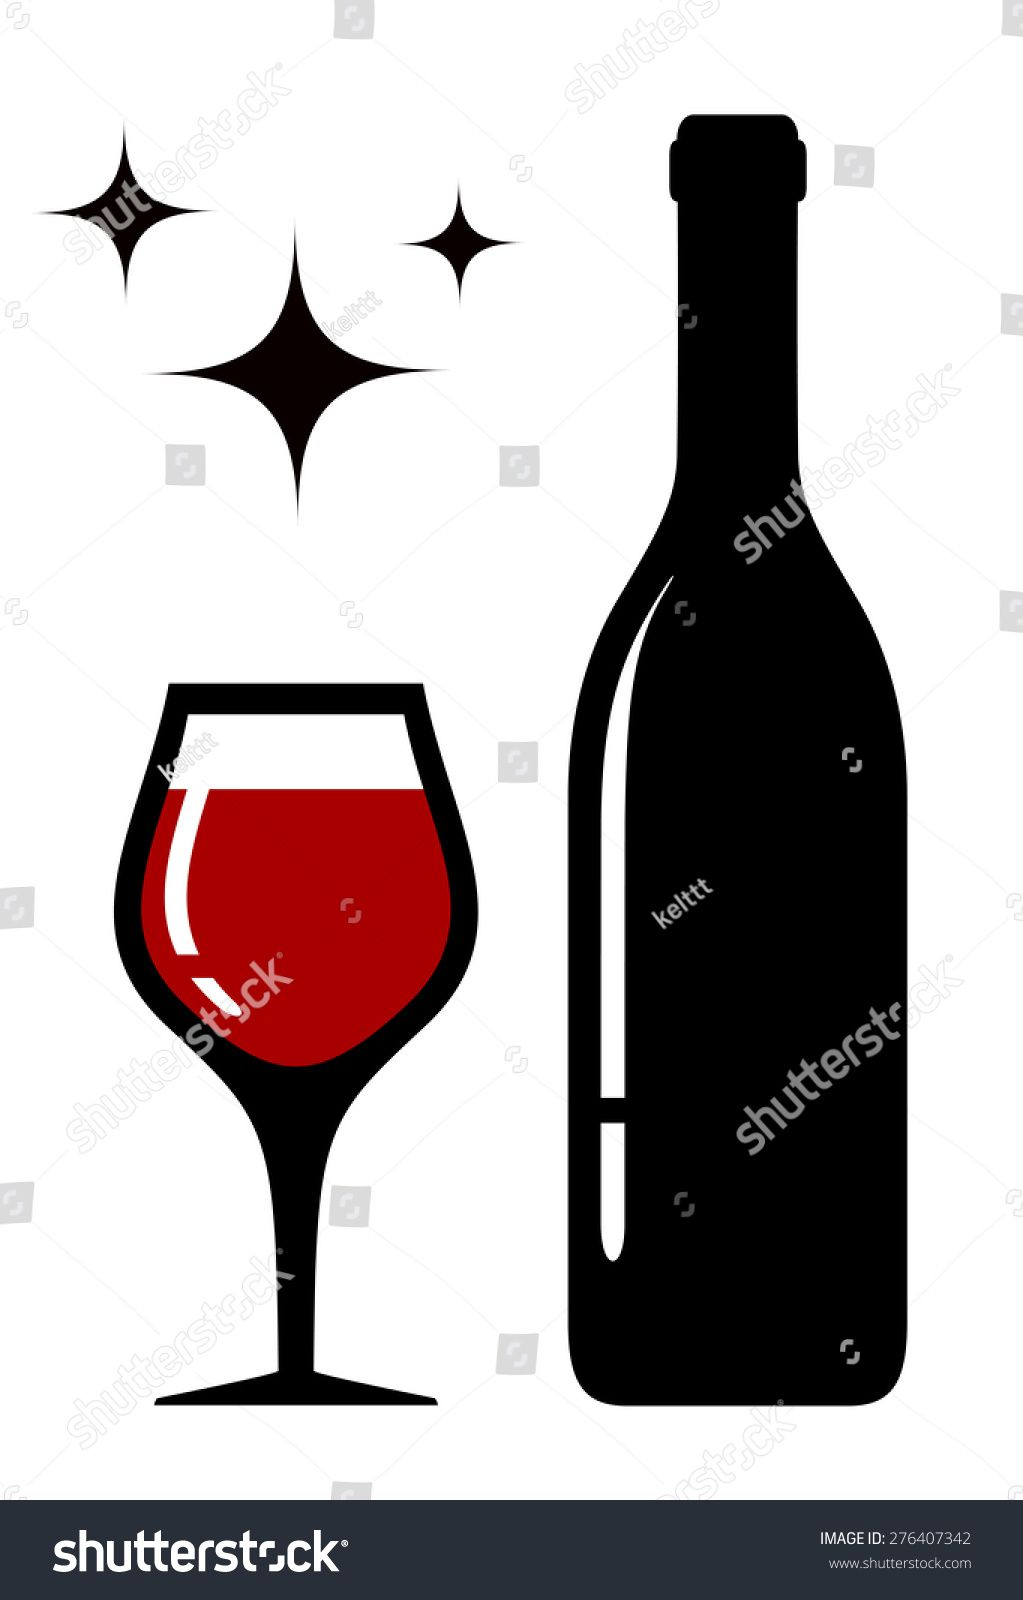 Image Result For Wine Glass Silhouette Wine Bottle Glass Wine Glass Wine